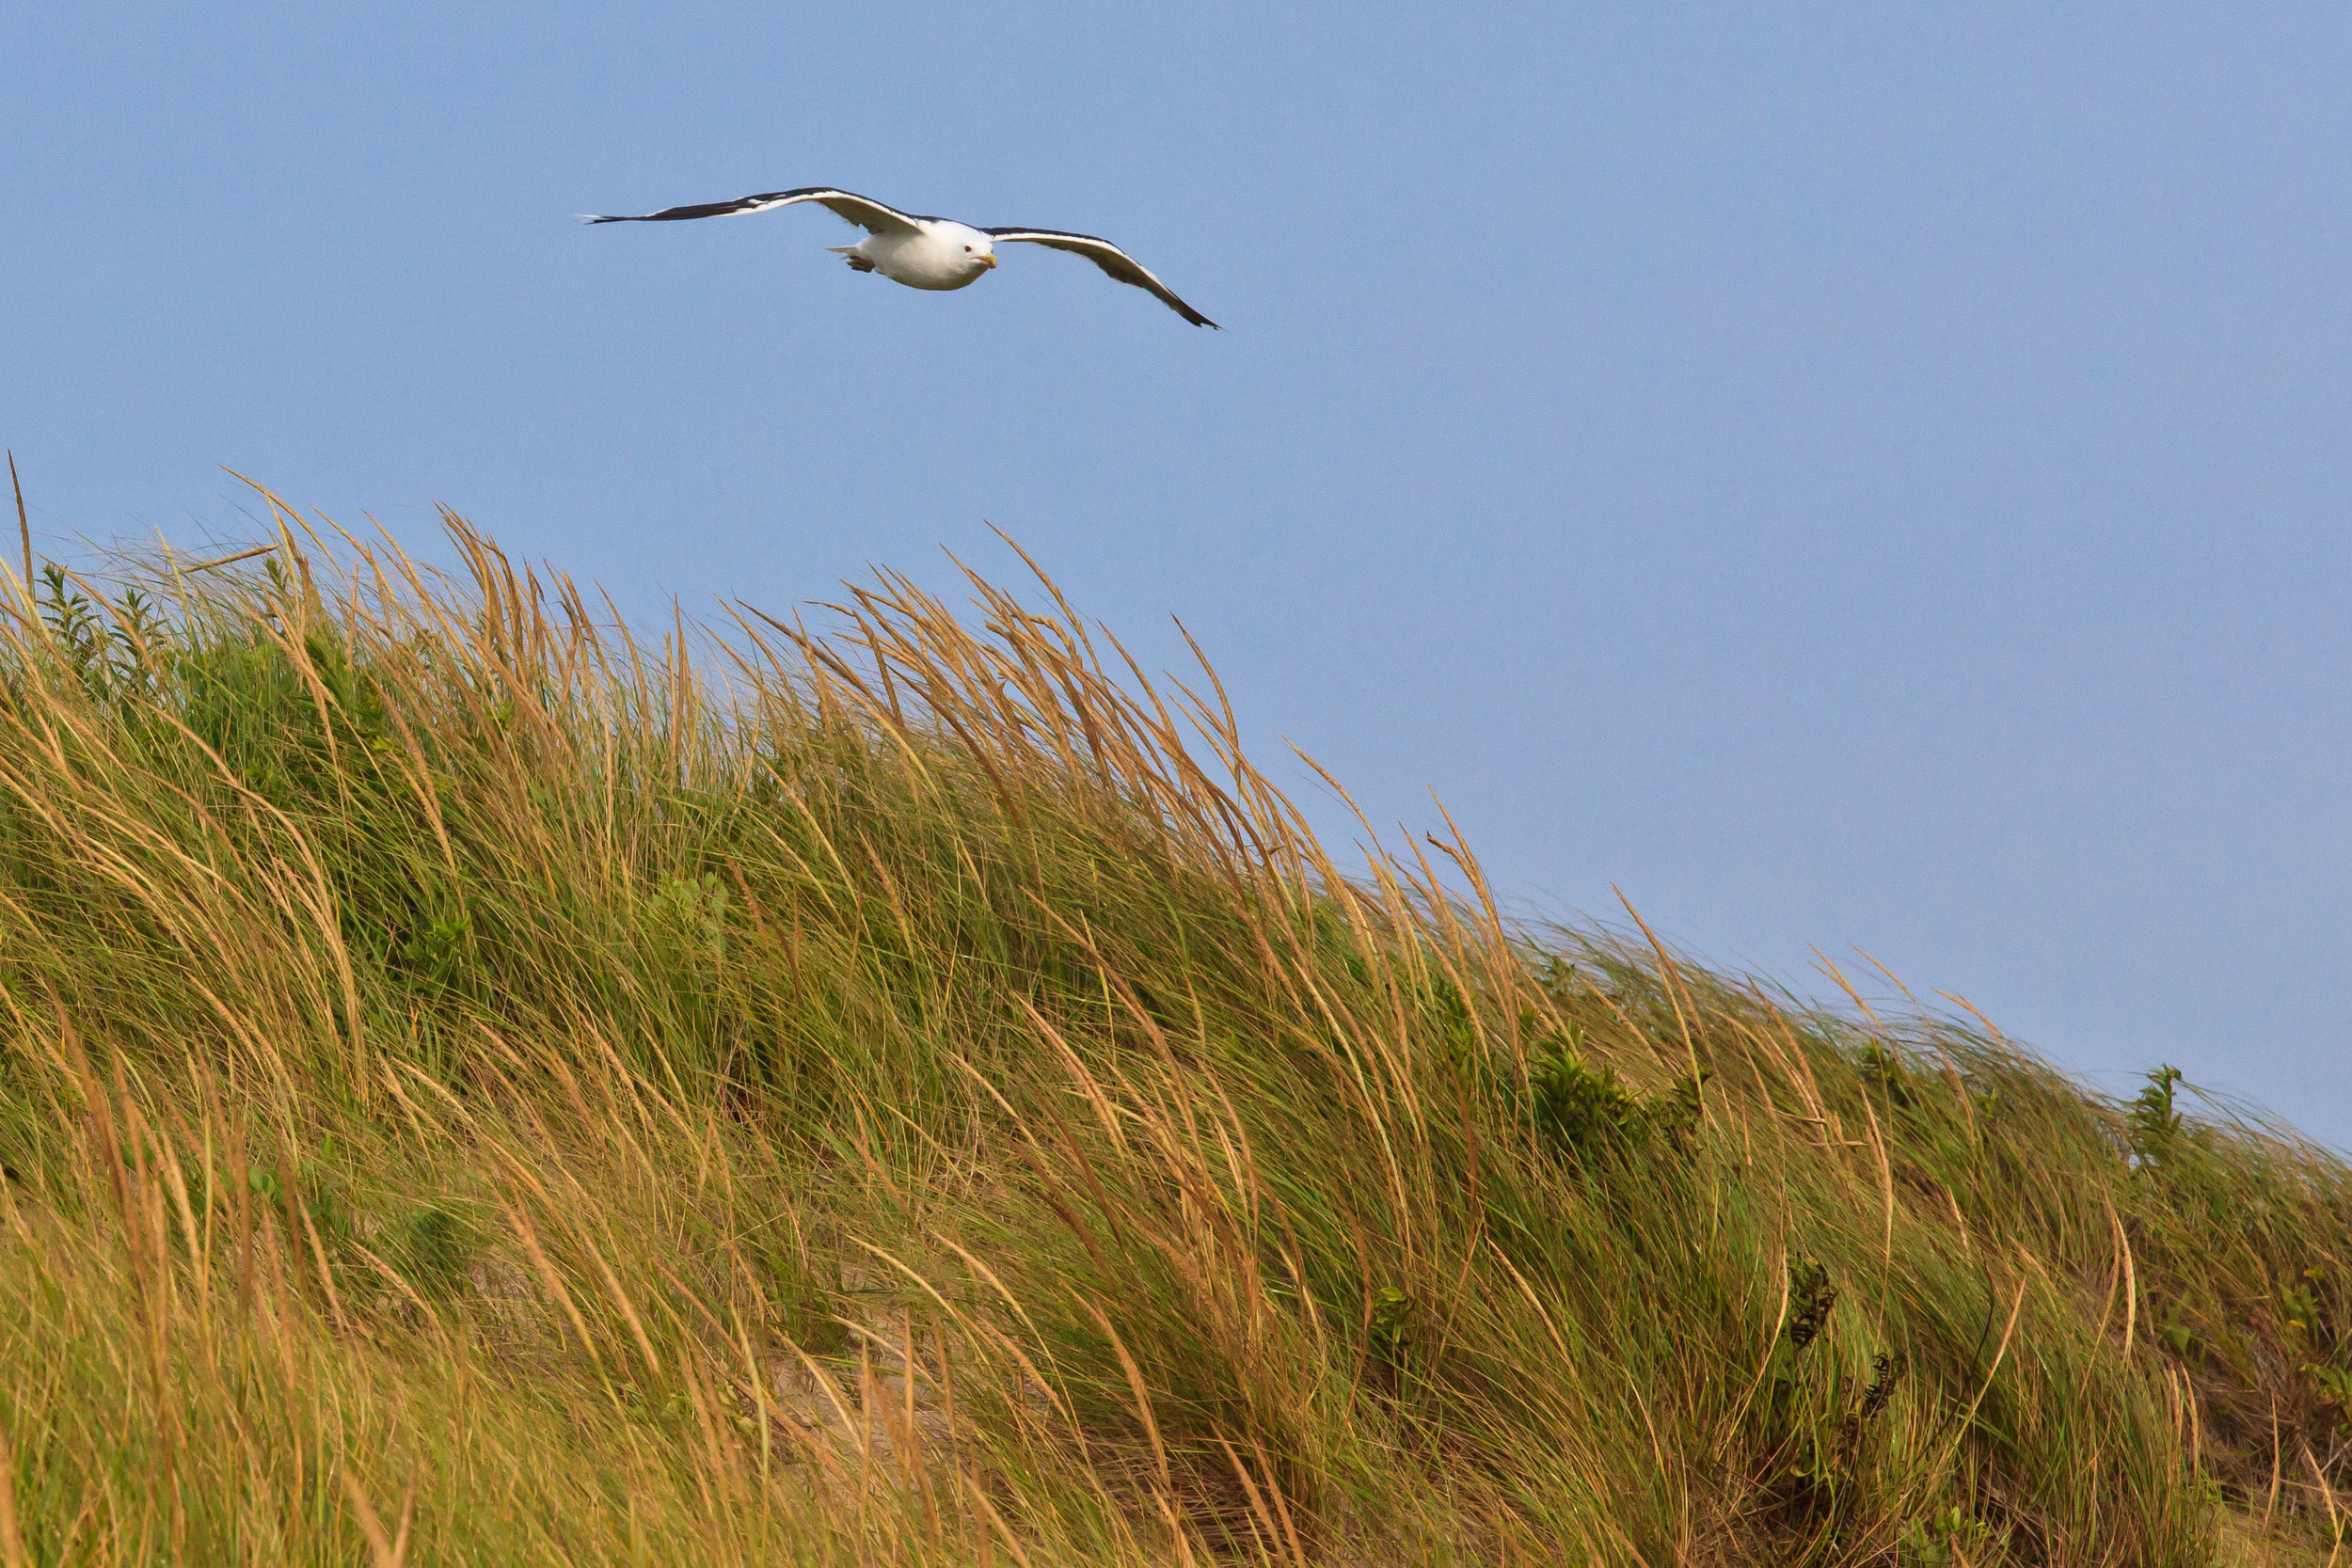 Soaring Gull, Katama Beach, Edgartown, MA